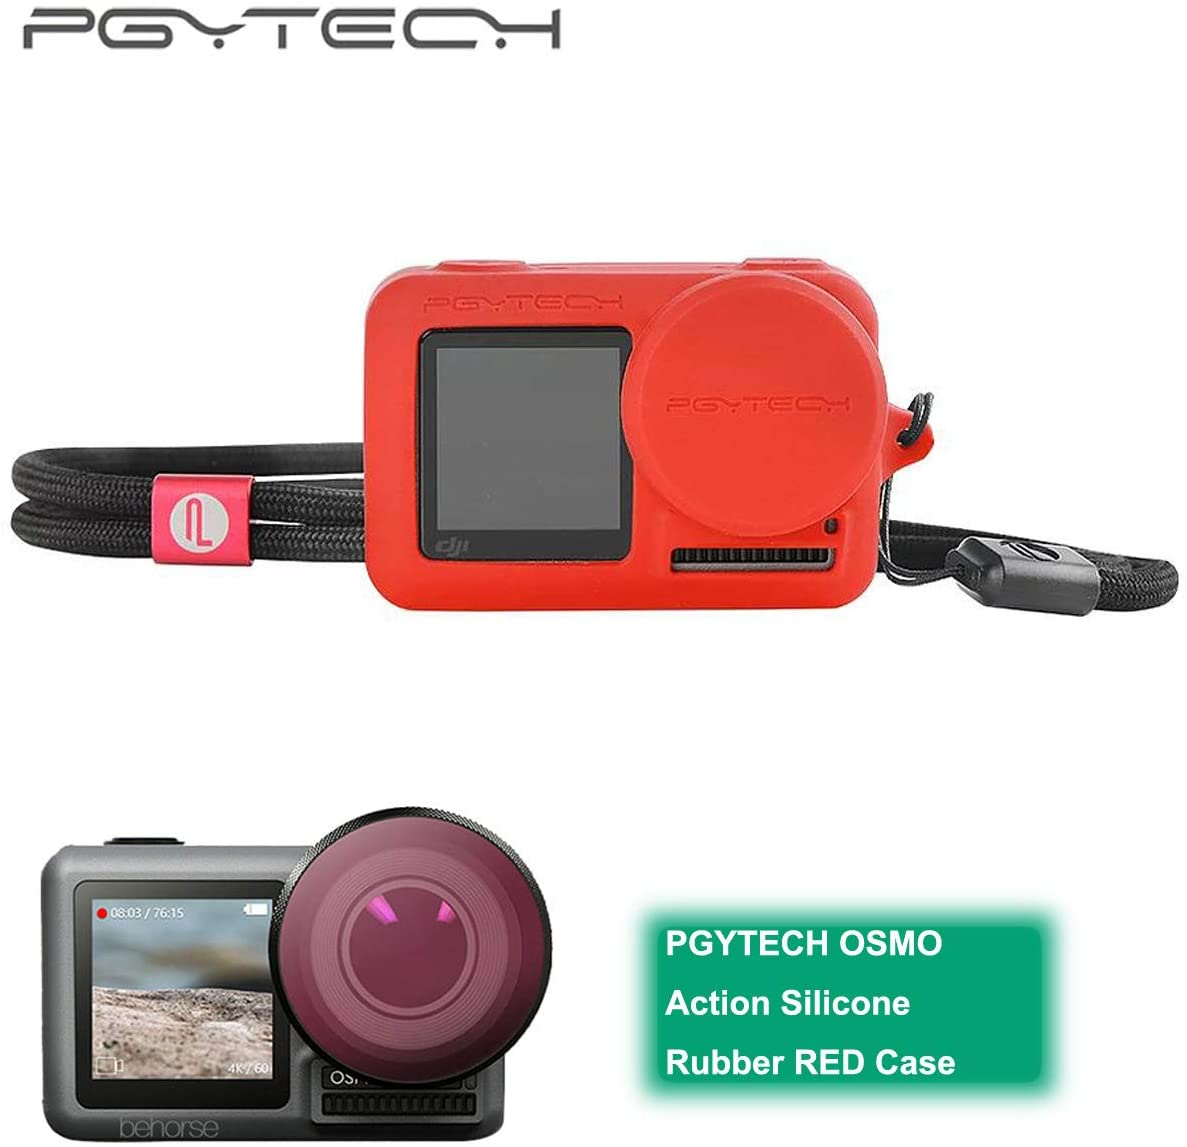 PGYTECH Huaye OSMO Compact Action 4K Waterproof Camera Sport Type-C Cable Protector Lens Hood Cage Compatible with DJI OSMO Action Camera Accessories (PGYTECH OSMO Action Silicone Rubber Red Case)